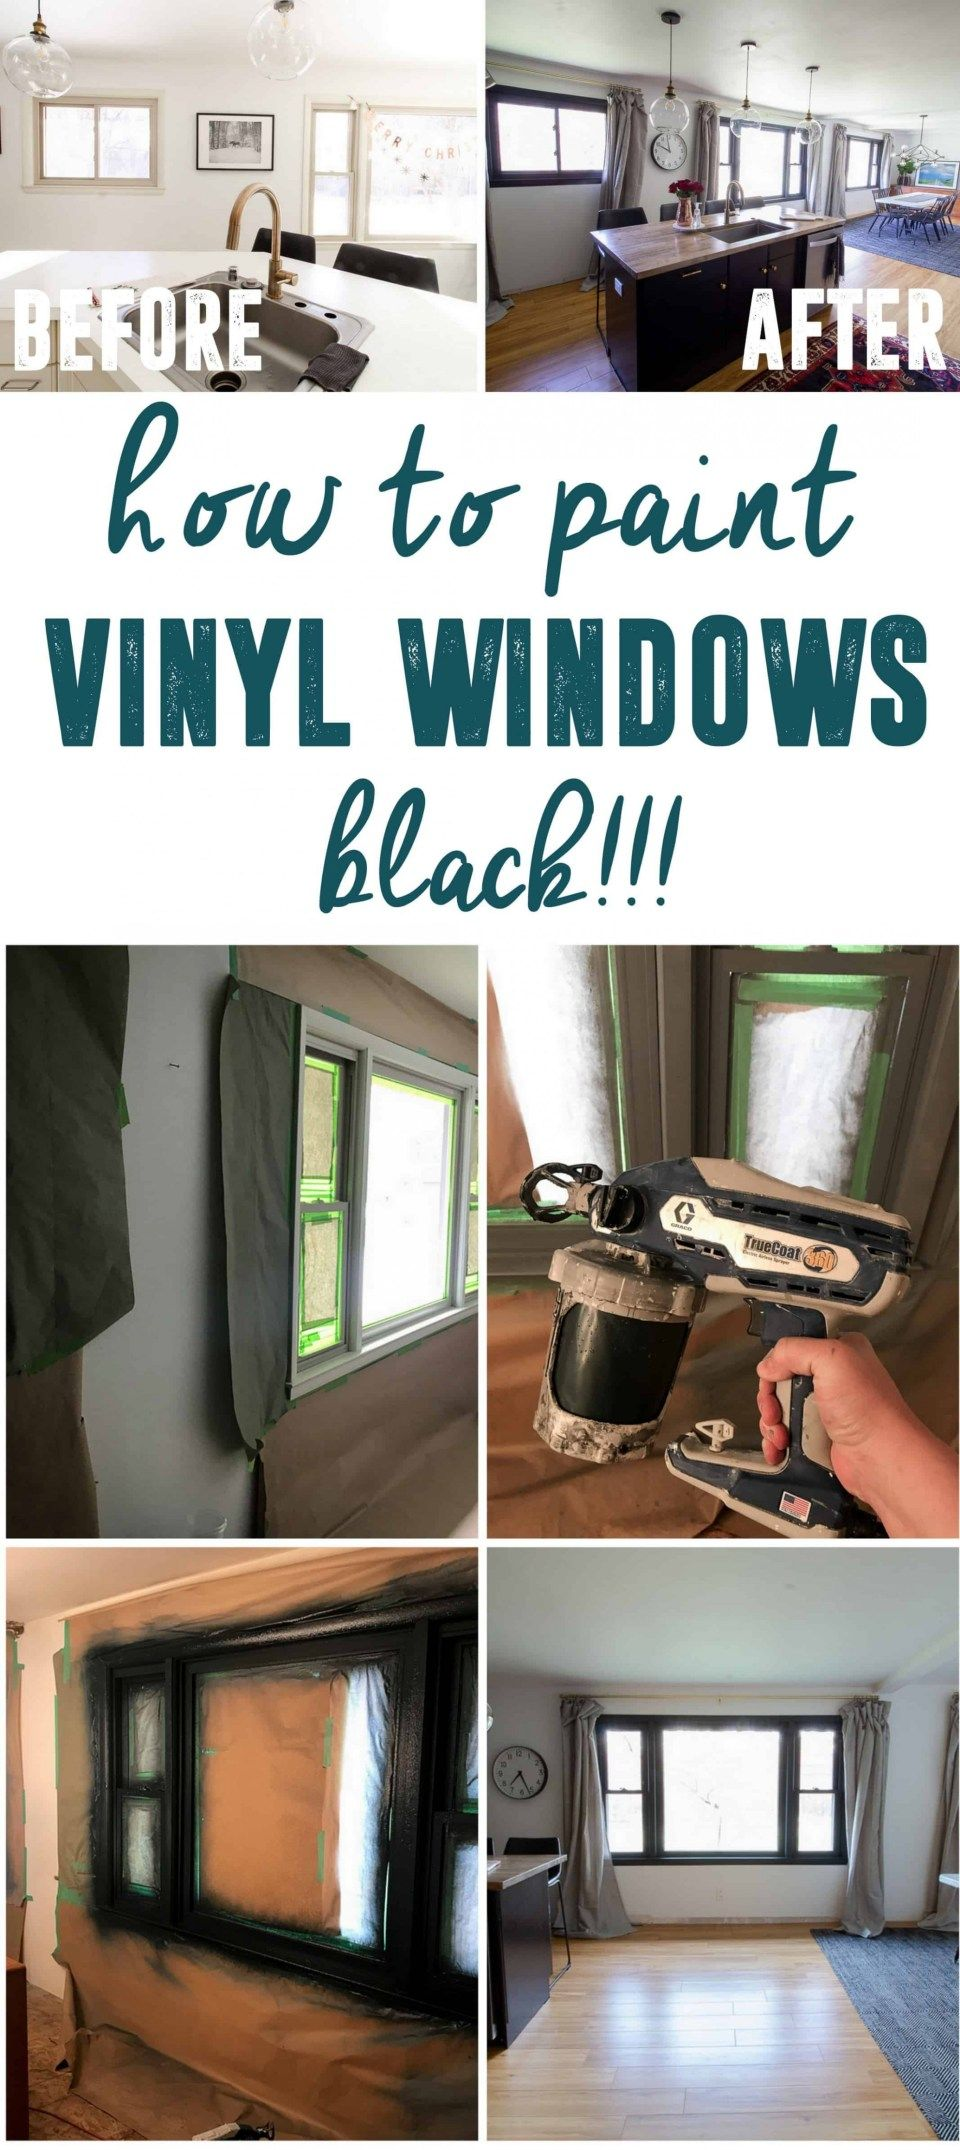 8 Moments To Remember From Painting Vinyl Windows Black Interior Painting Vinyl Windows Black Interior In 2020 Painting Vinyl Windows Vinyl Window Frame Window Vinyl